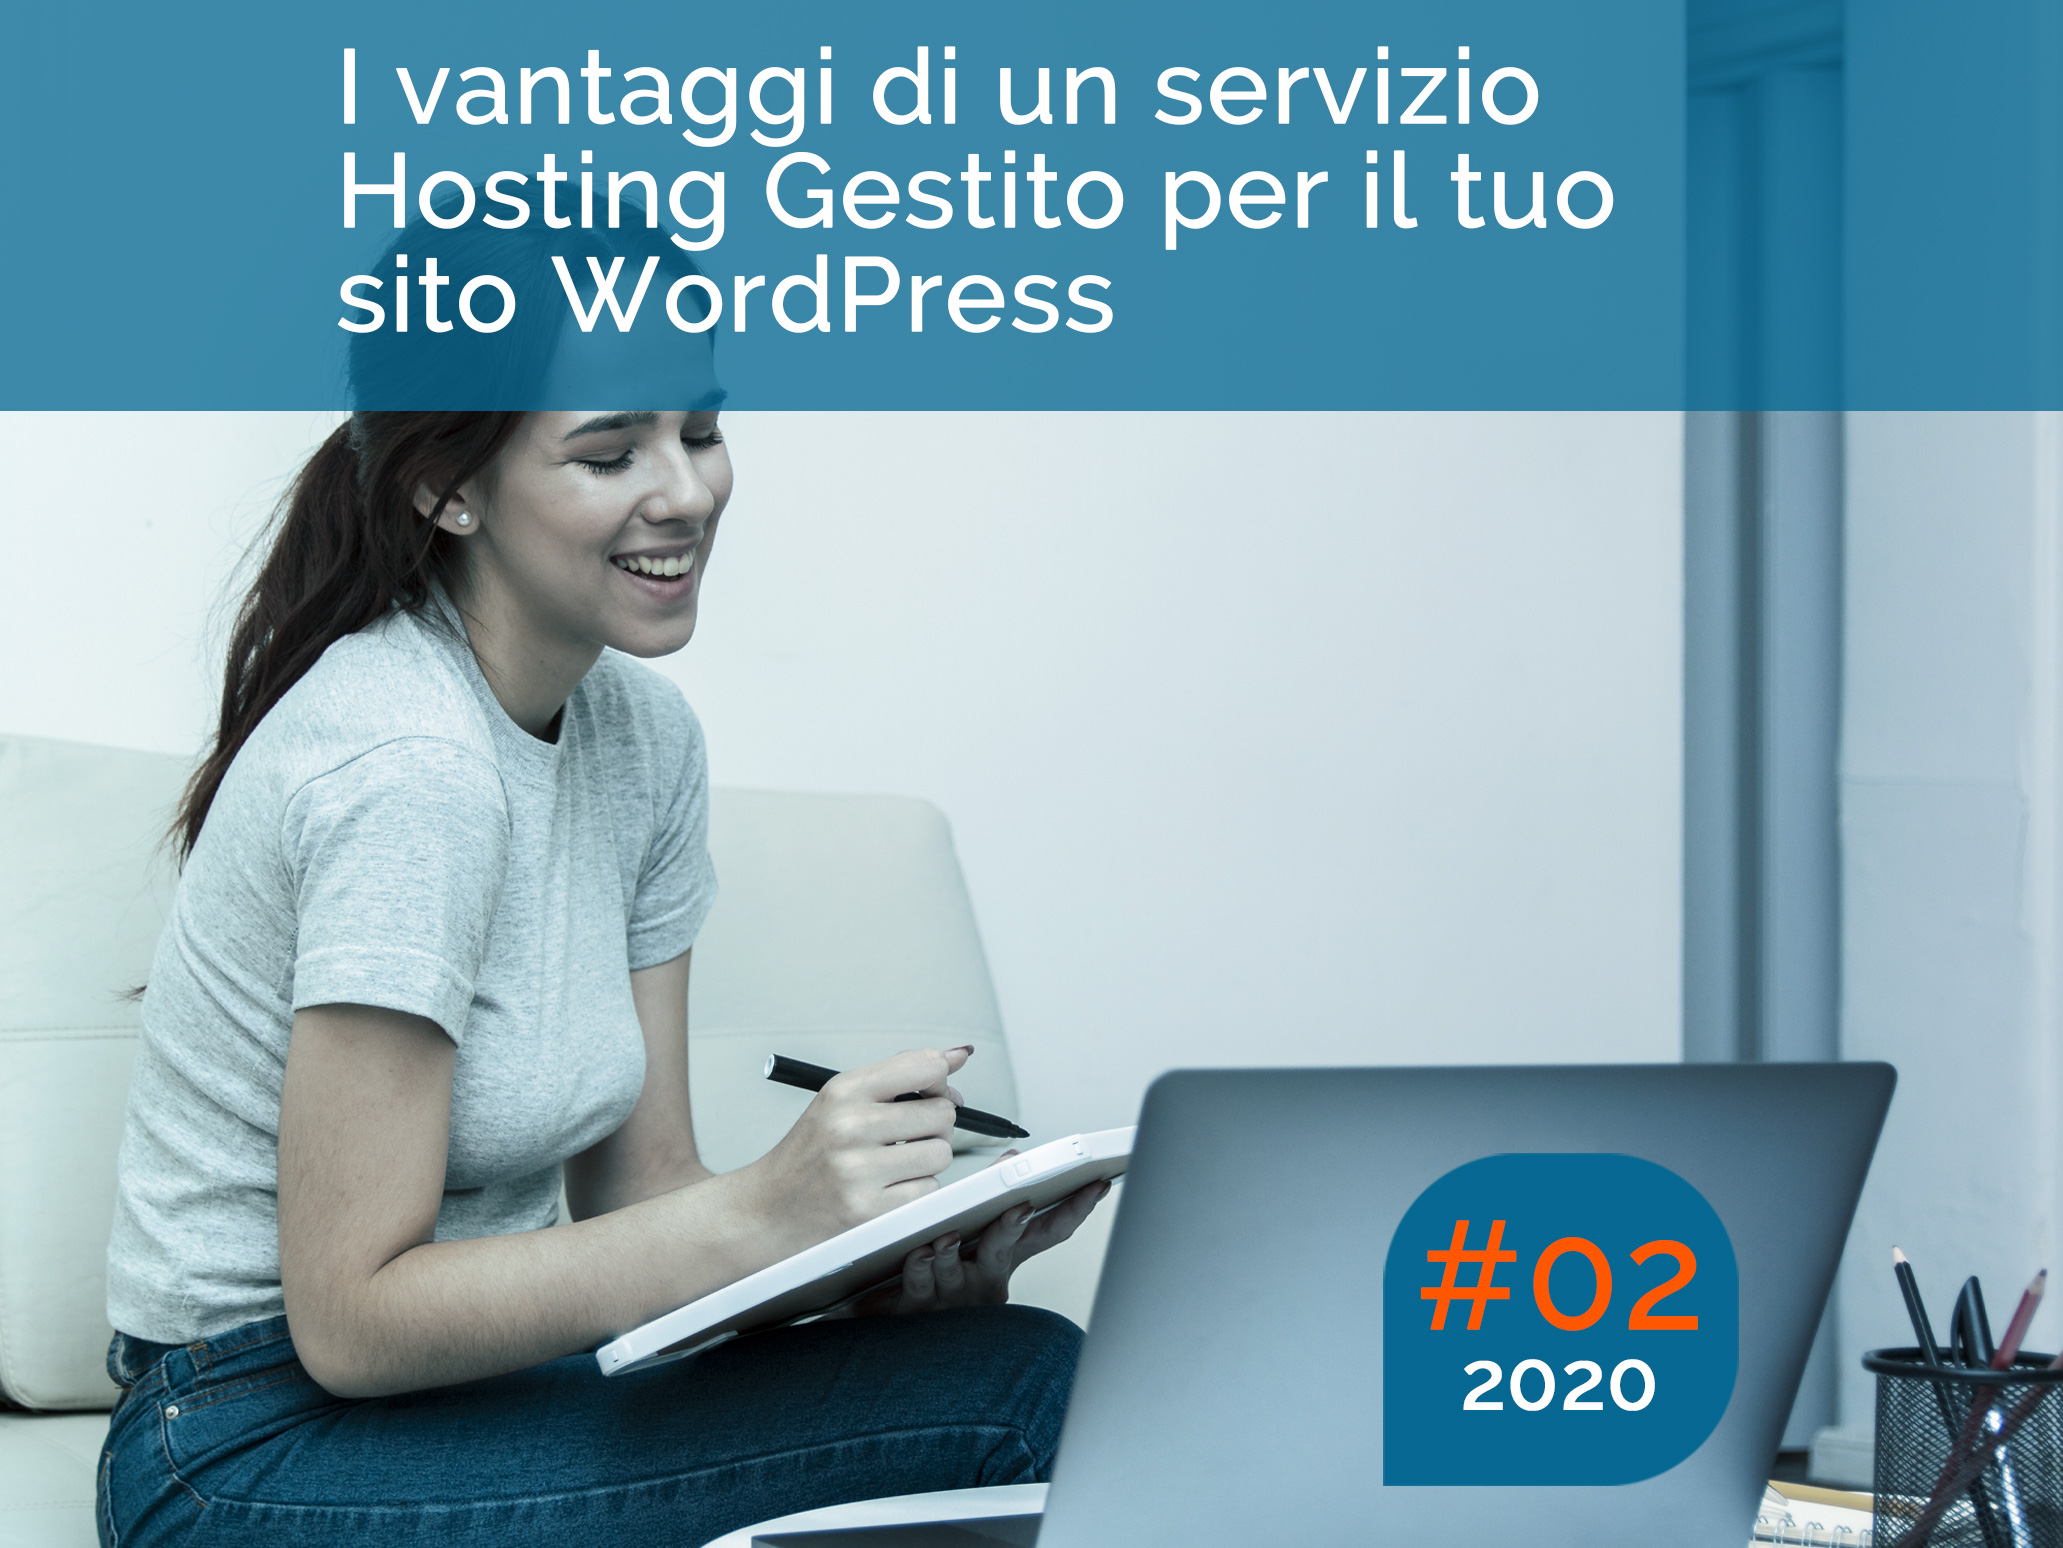 vantaggi Hosting Gestito per sito WordPress